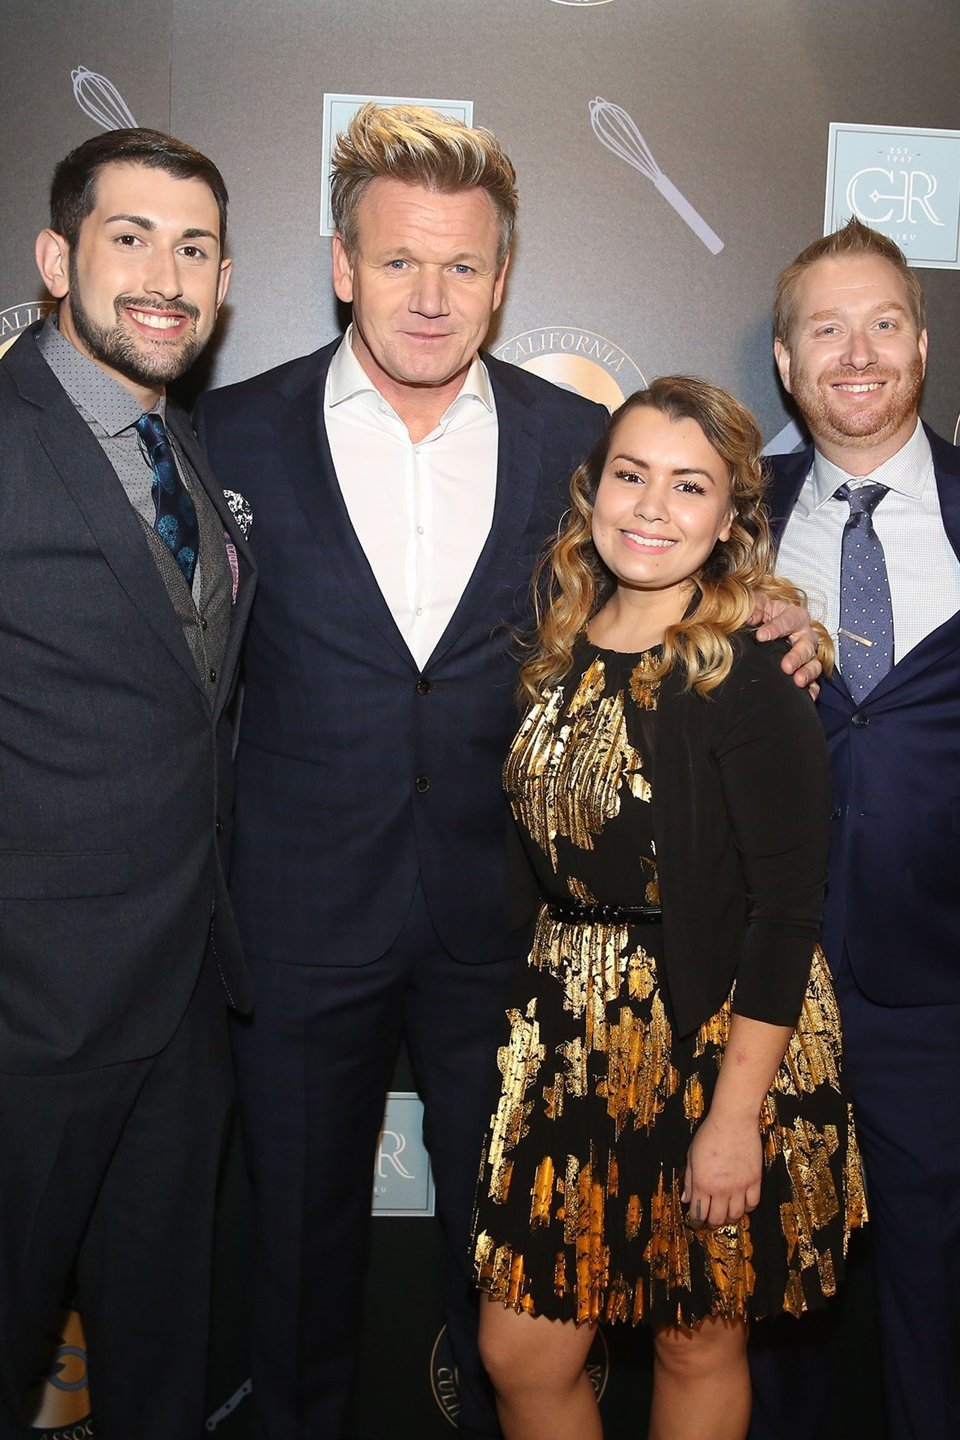 Watch Hell S Kitchen S17 E16 All Star Finale 2018